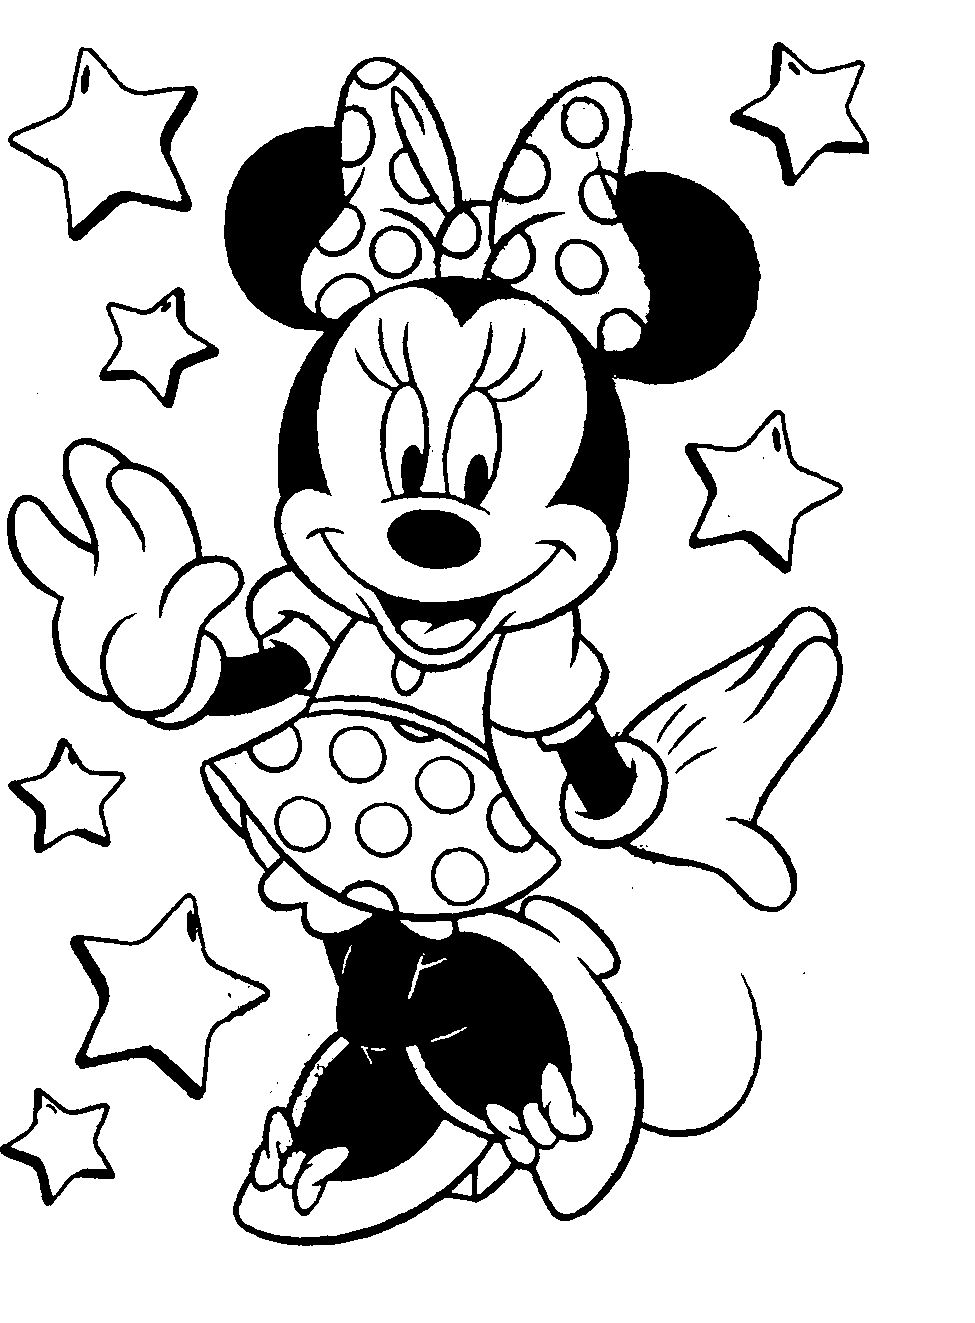 printable minnie mouse coloring pages # 1